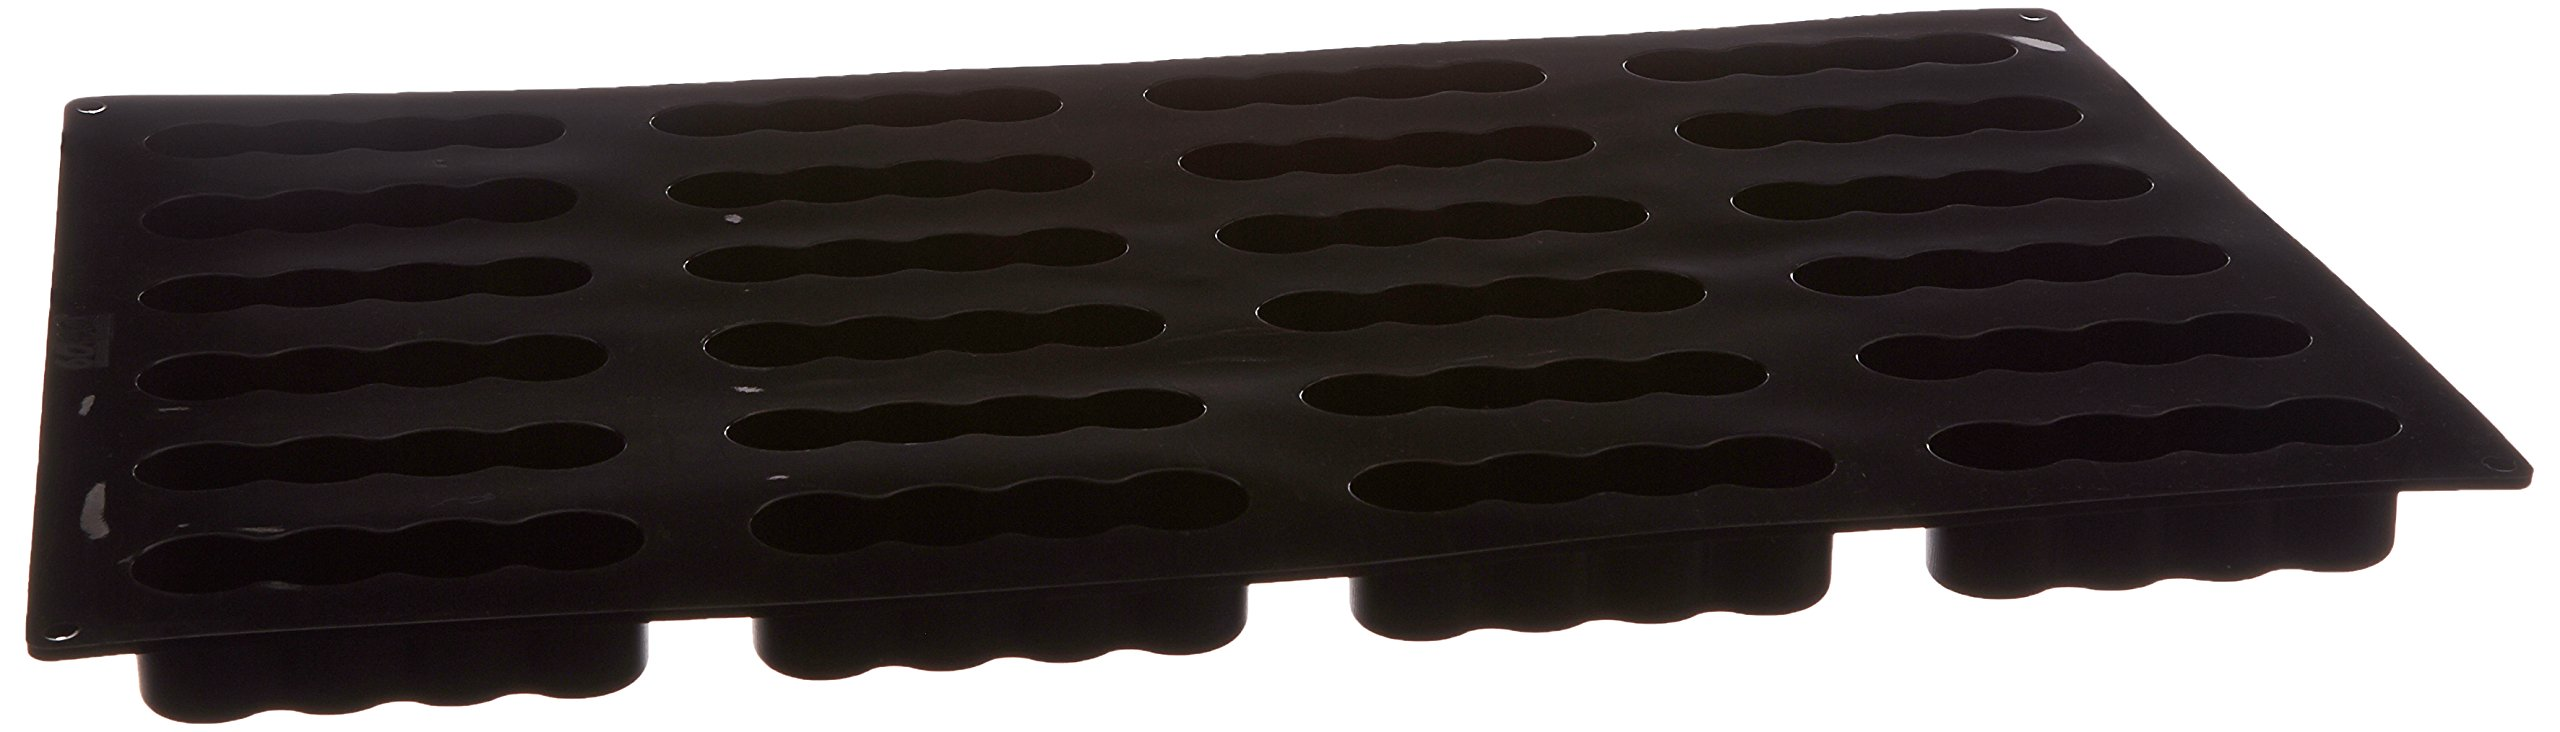 Paderno World Cuisine 4-1/2-Inch by 1 1/4-Inch Non-stick Silicone Cylinder Mold (24x) by Paderno World Cuisine (Image #1)